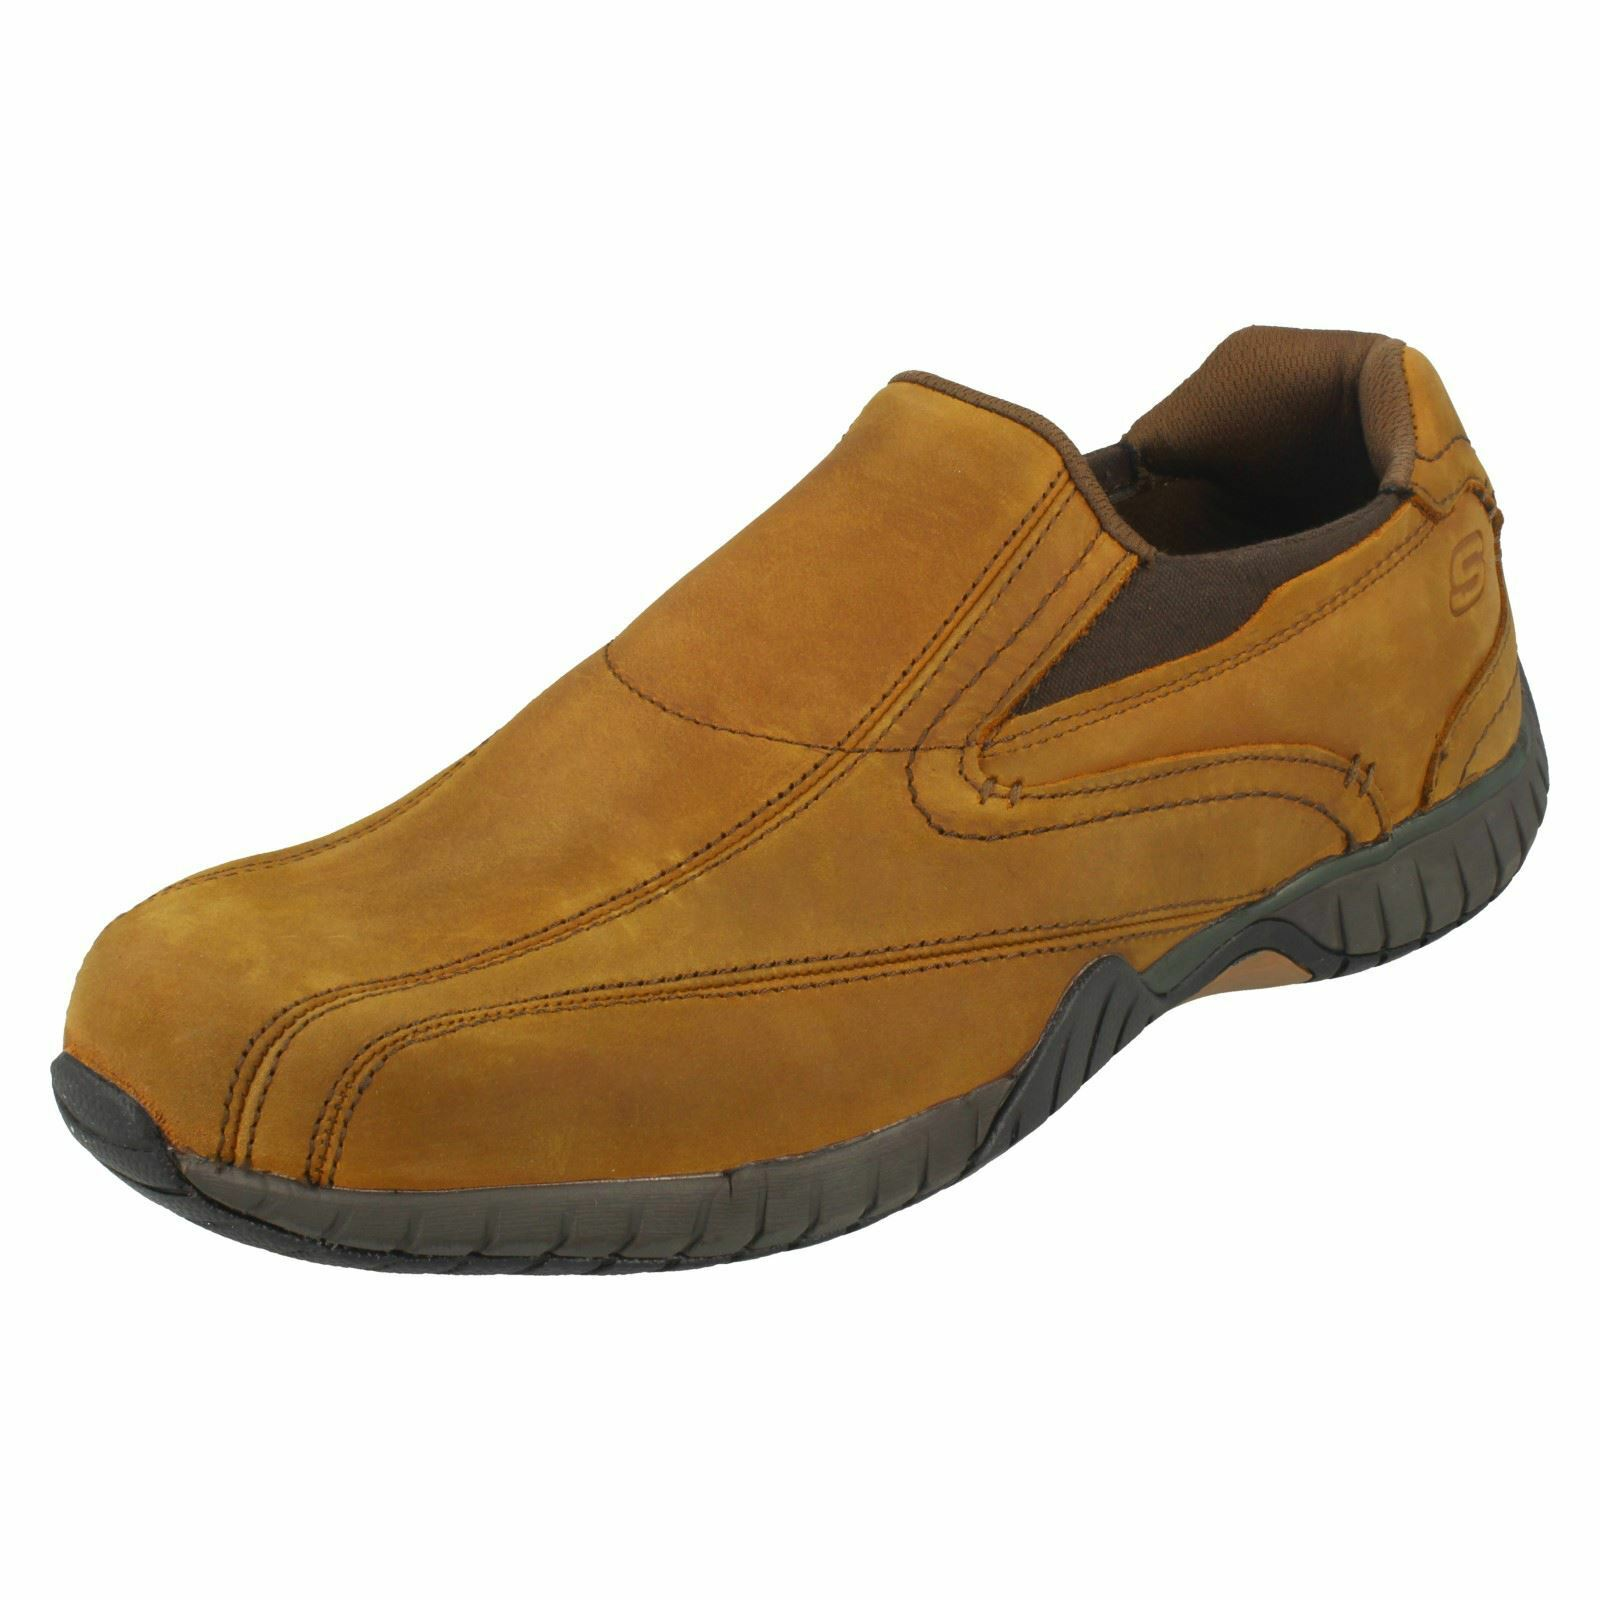 Mens Skechers Casual Shoes Sendro - Bascom 65287